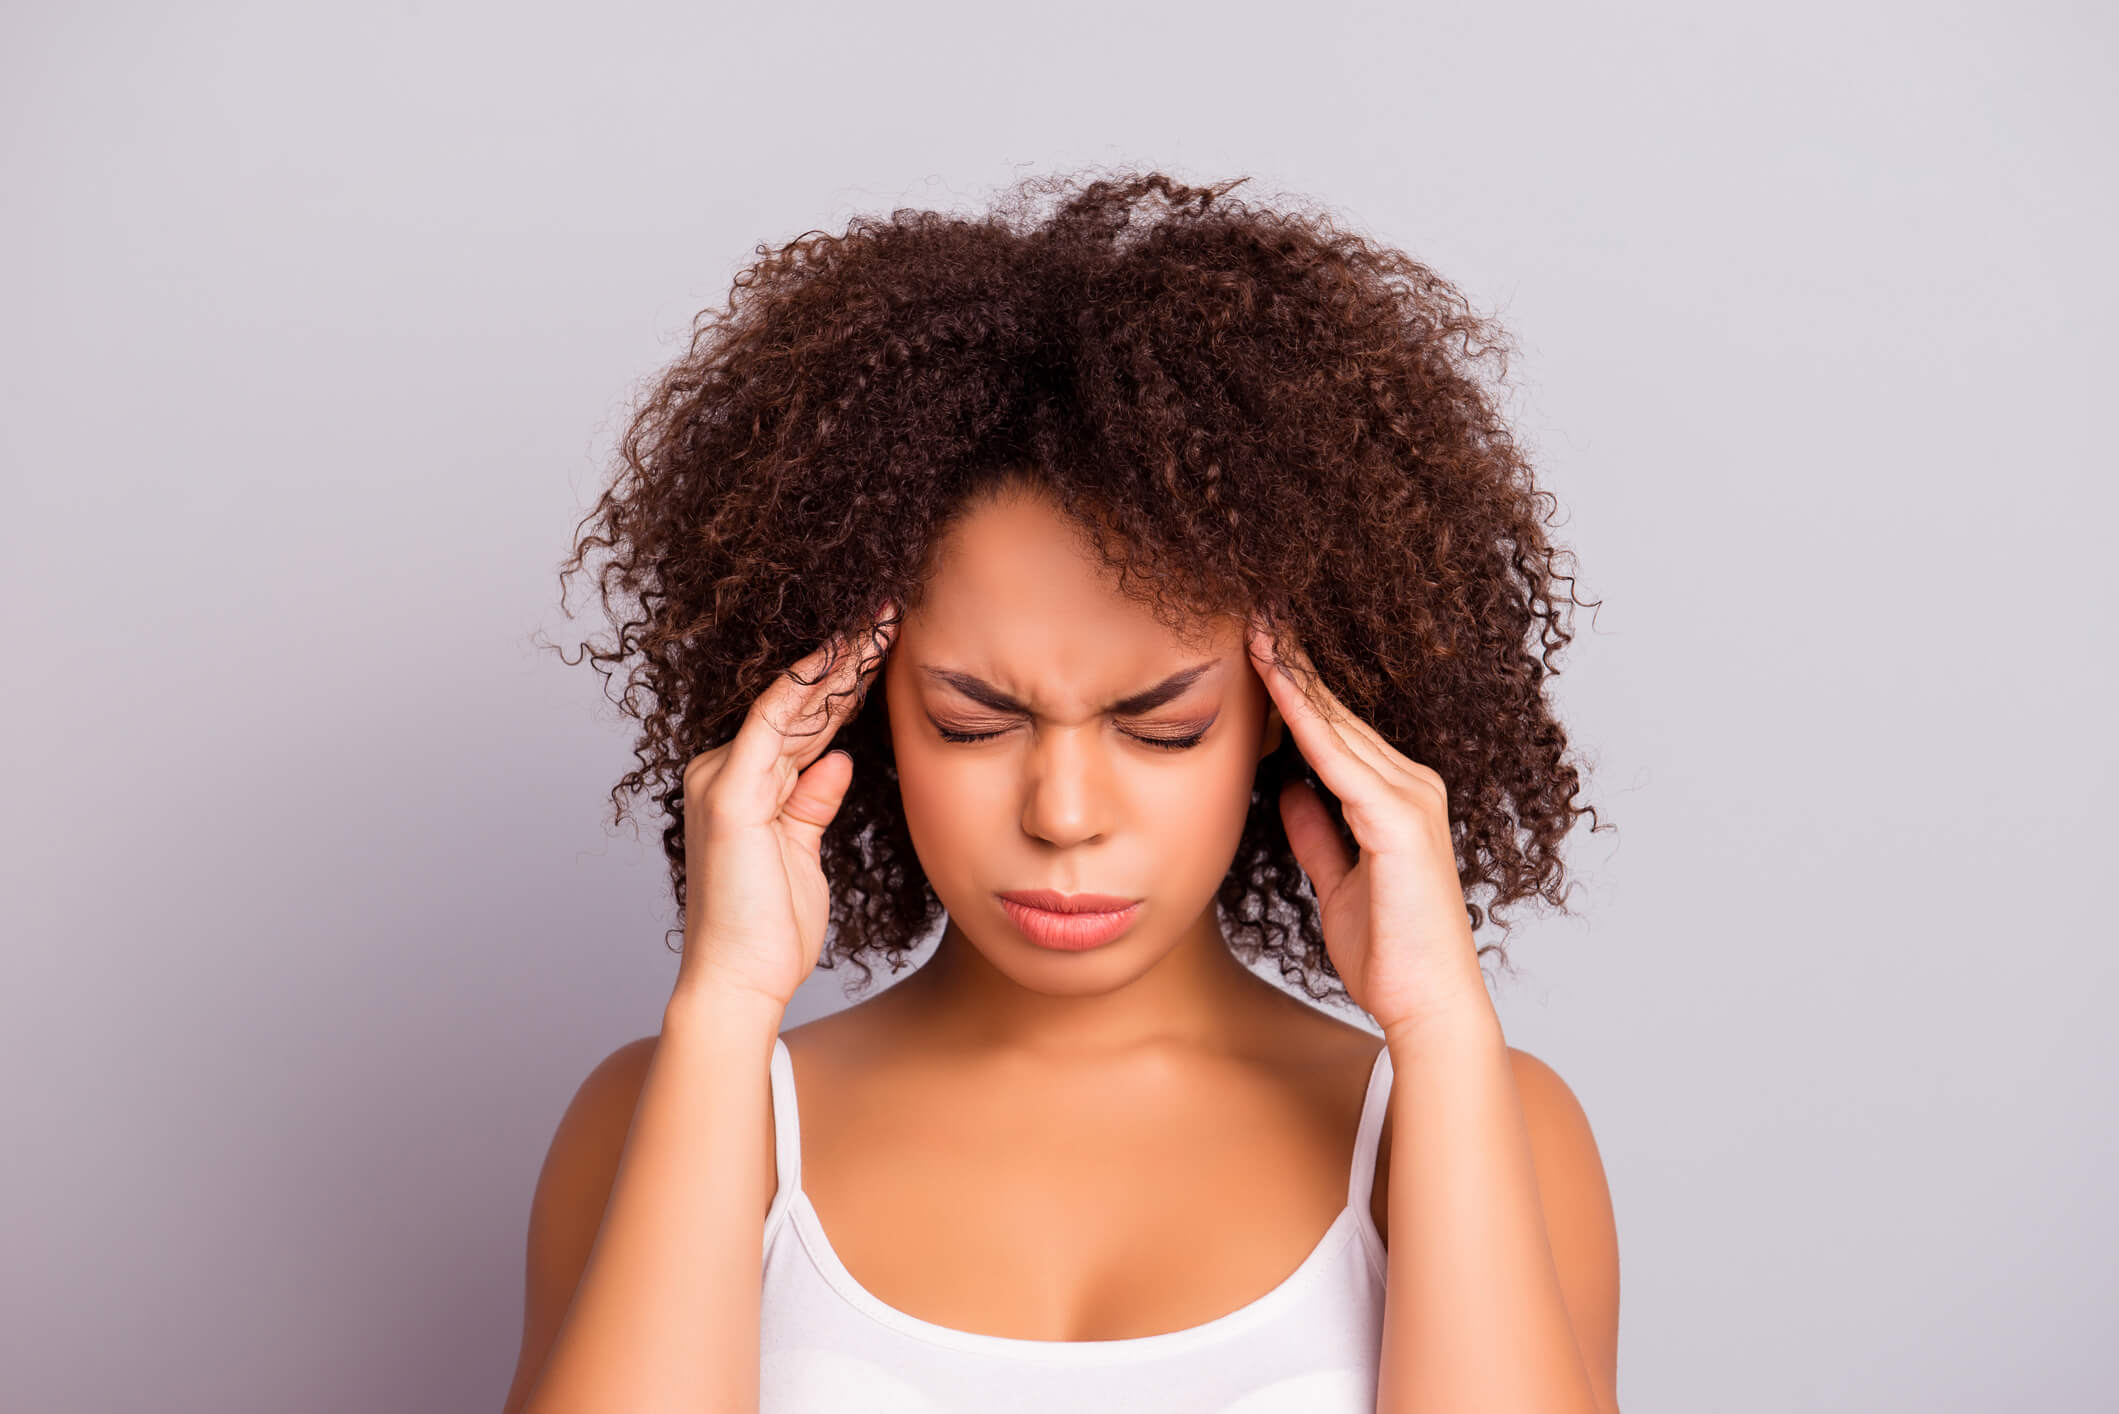 get freedom from headache pain with simmons specific chiropractic in midland michigan